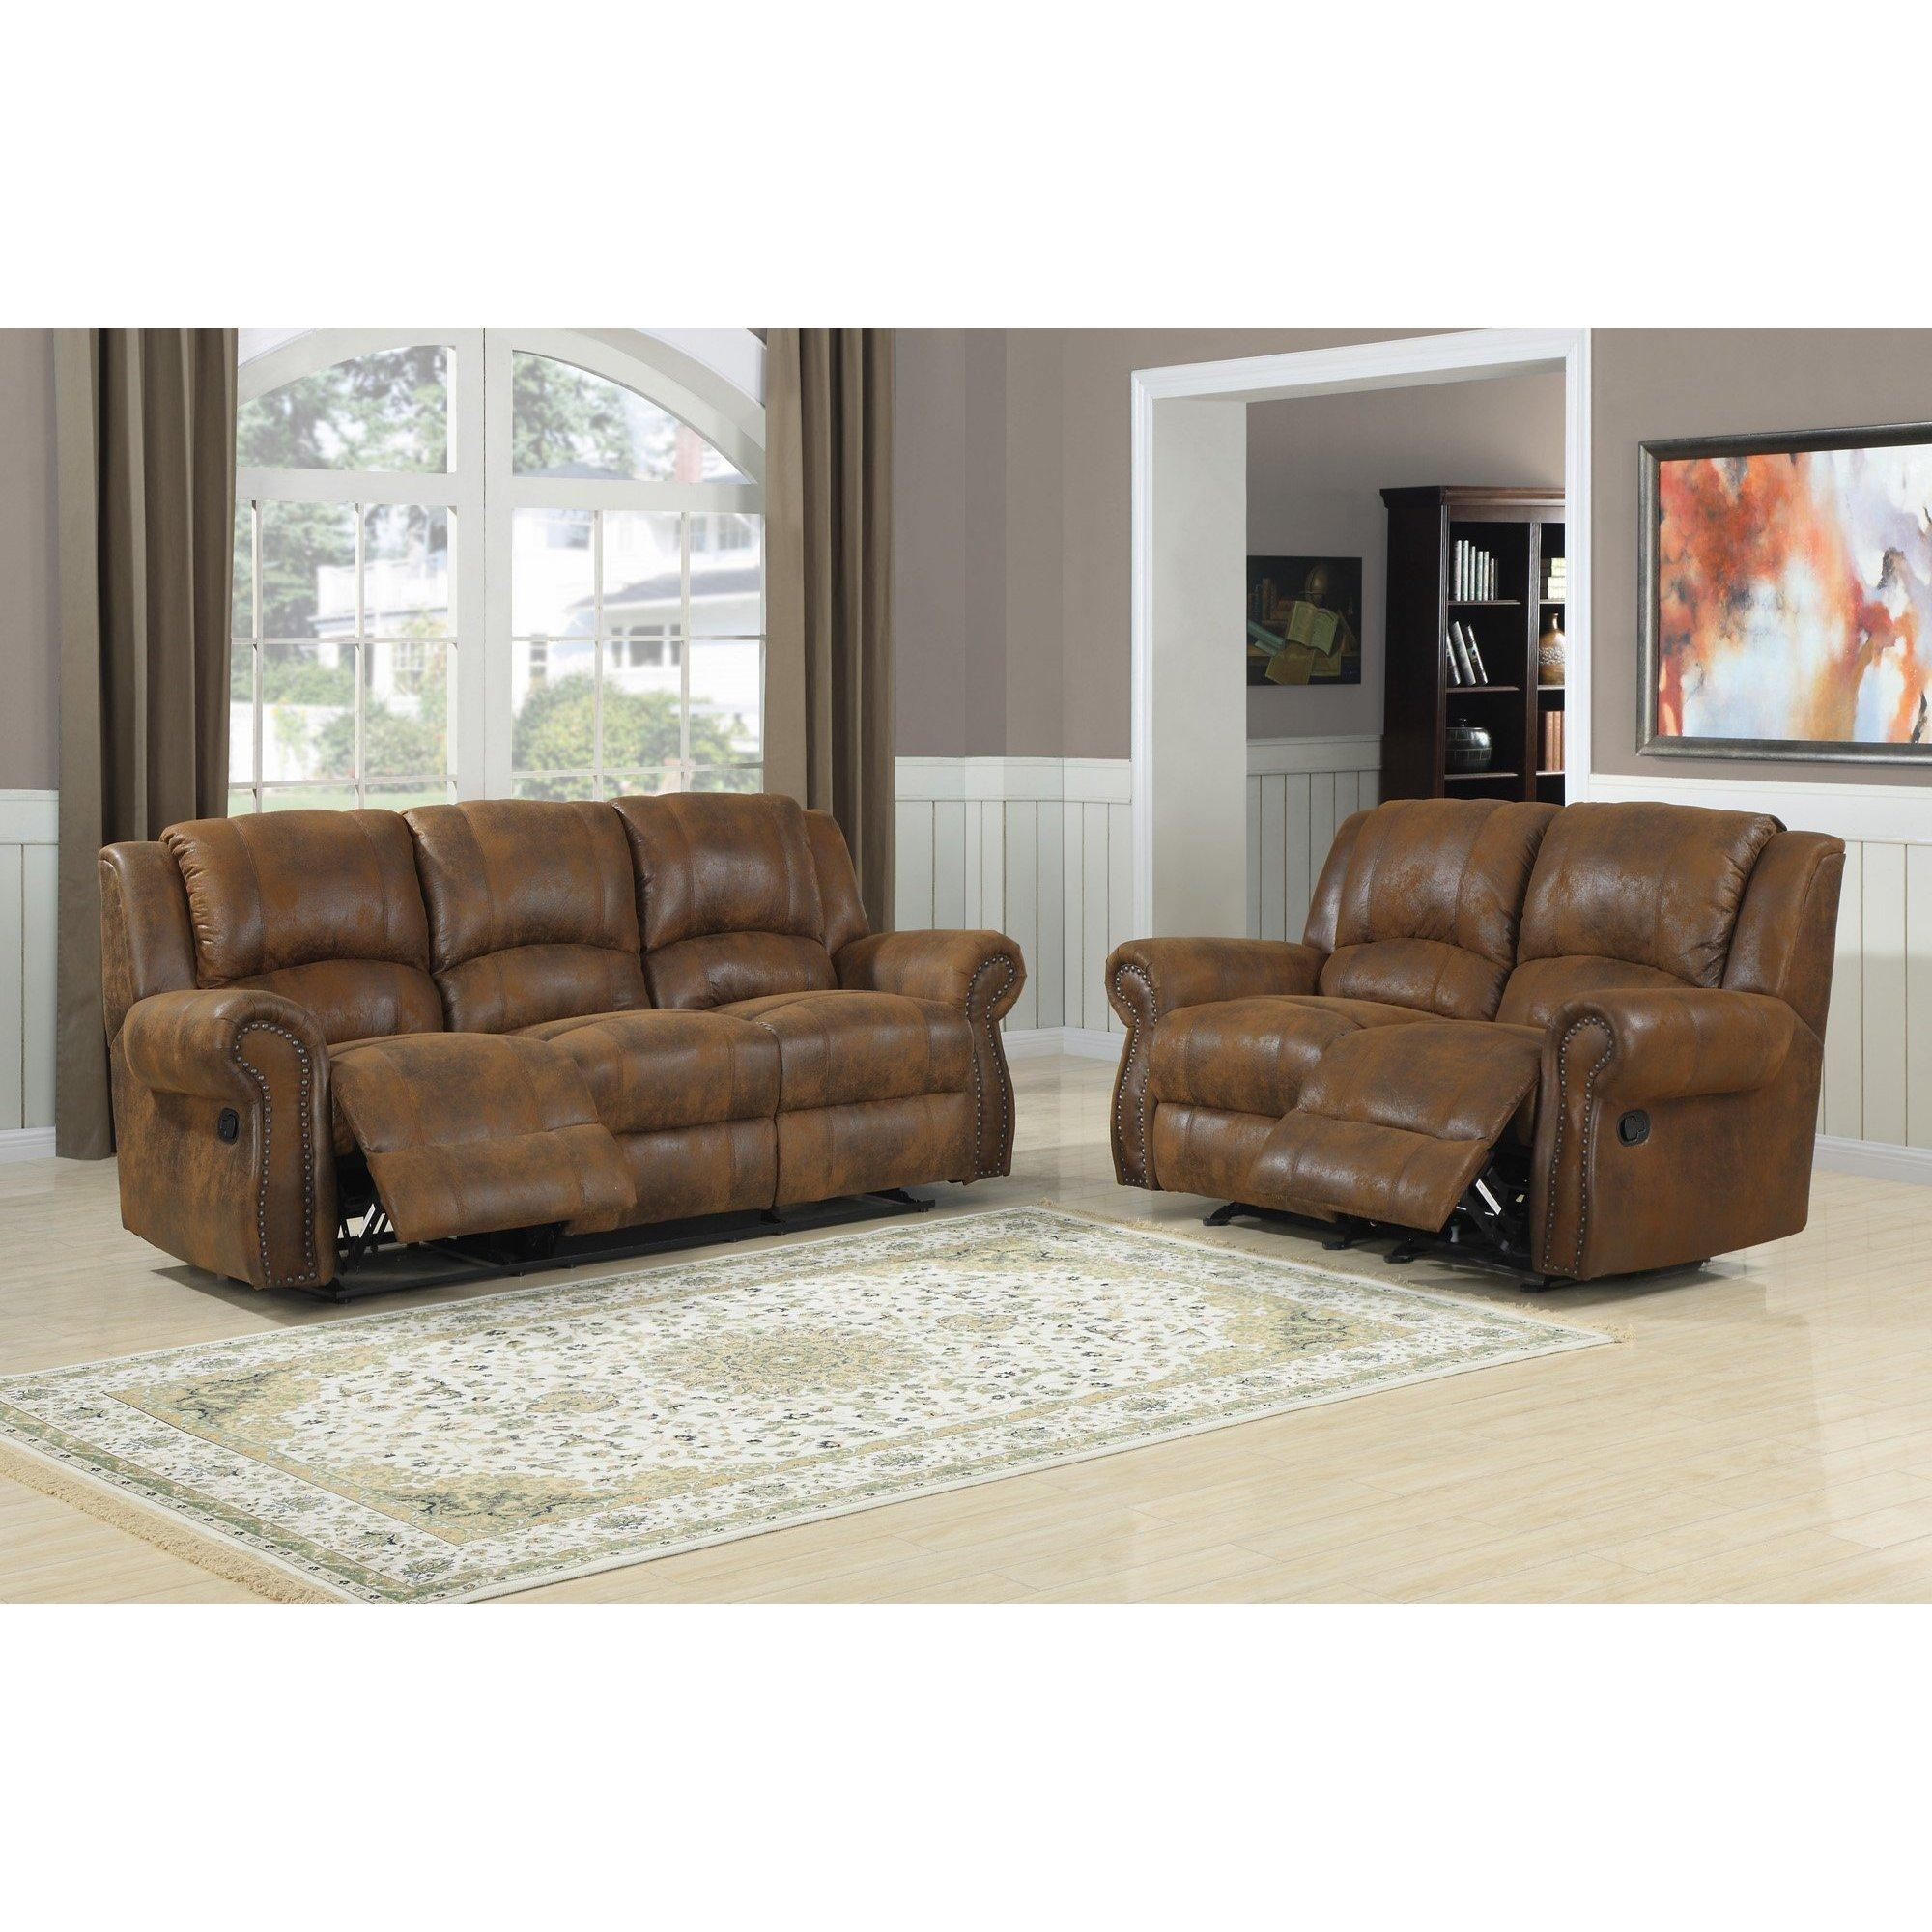 Bomber Jacket Leather Sofa With Design Picture 36384 | Kengire Within Bomber Leather Sofas (View 7 of 20)